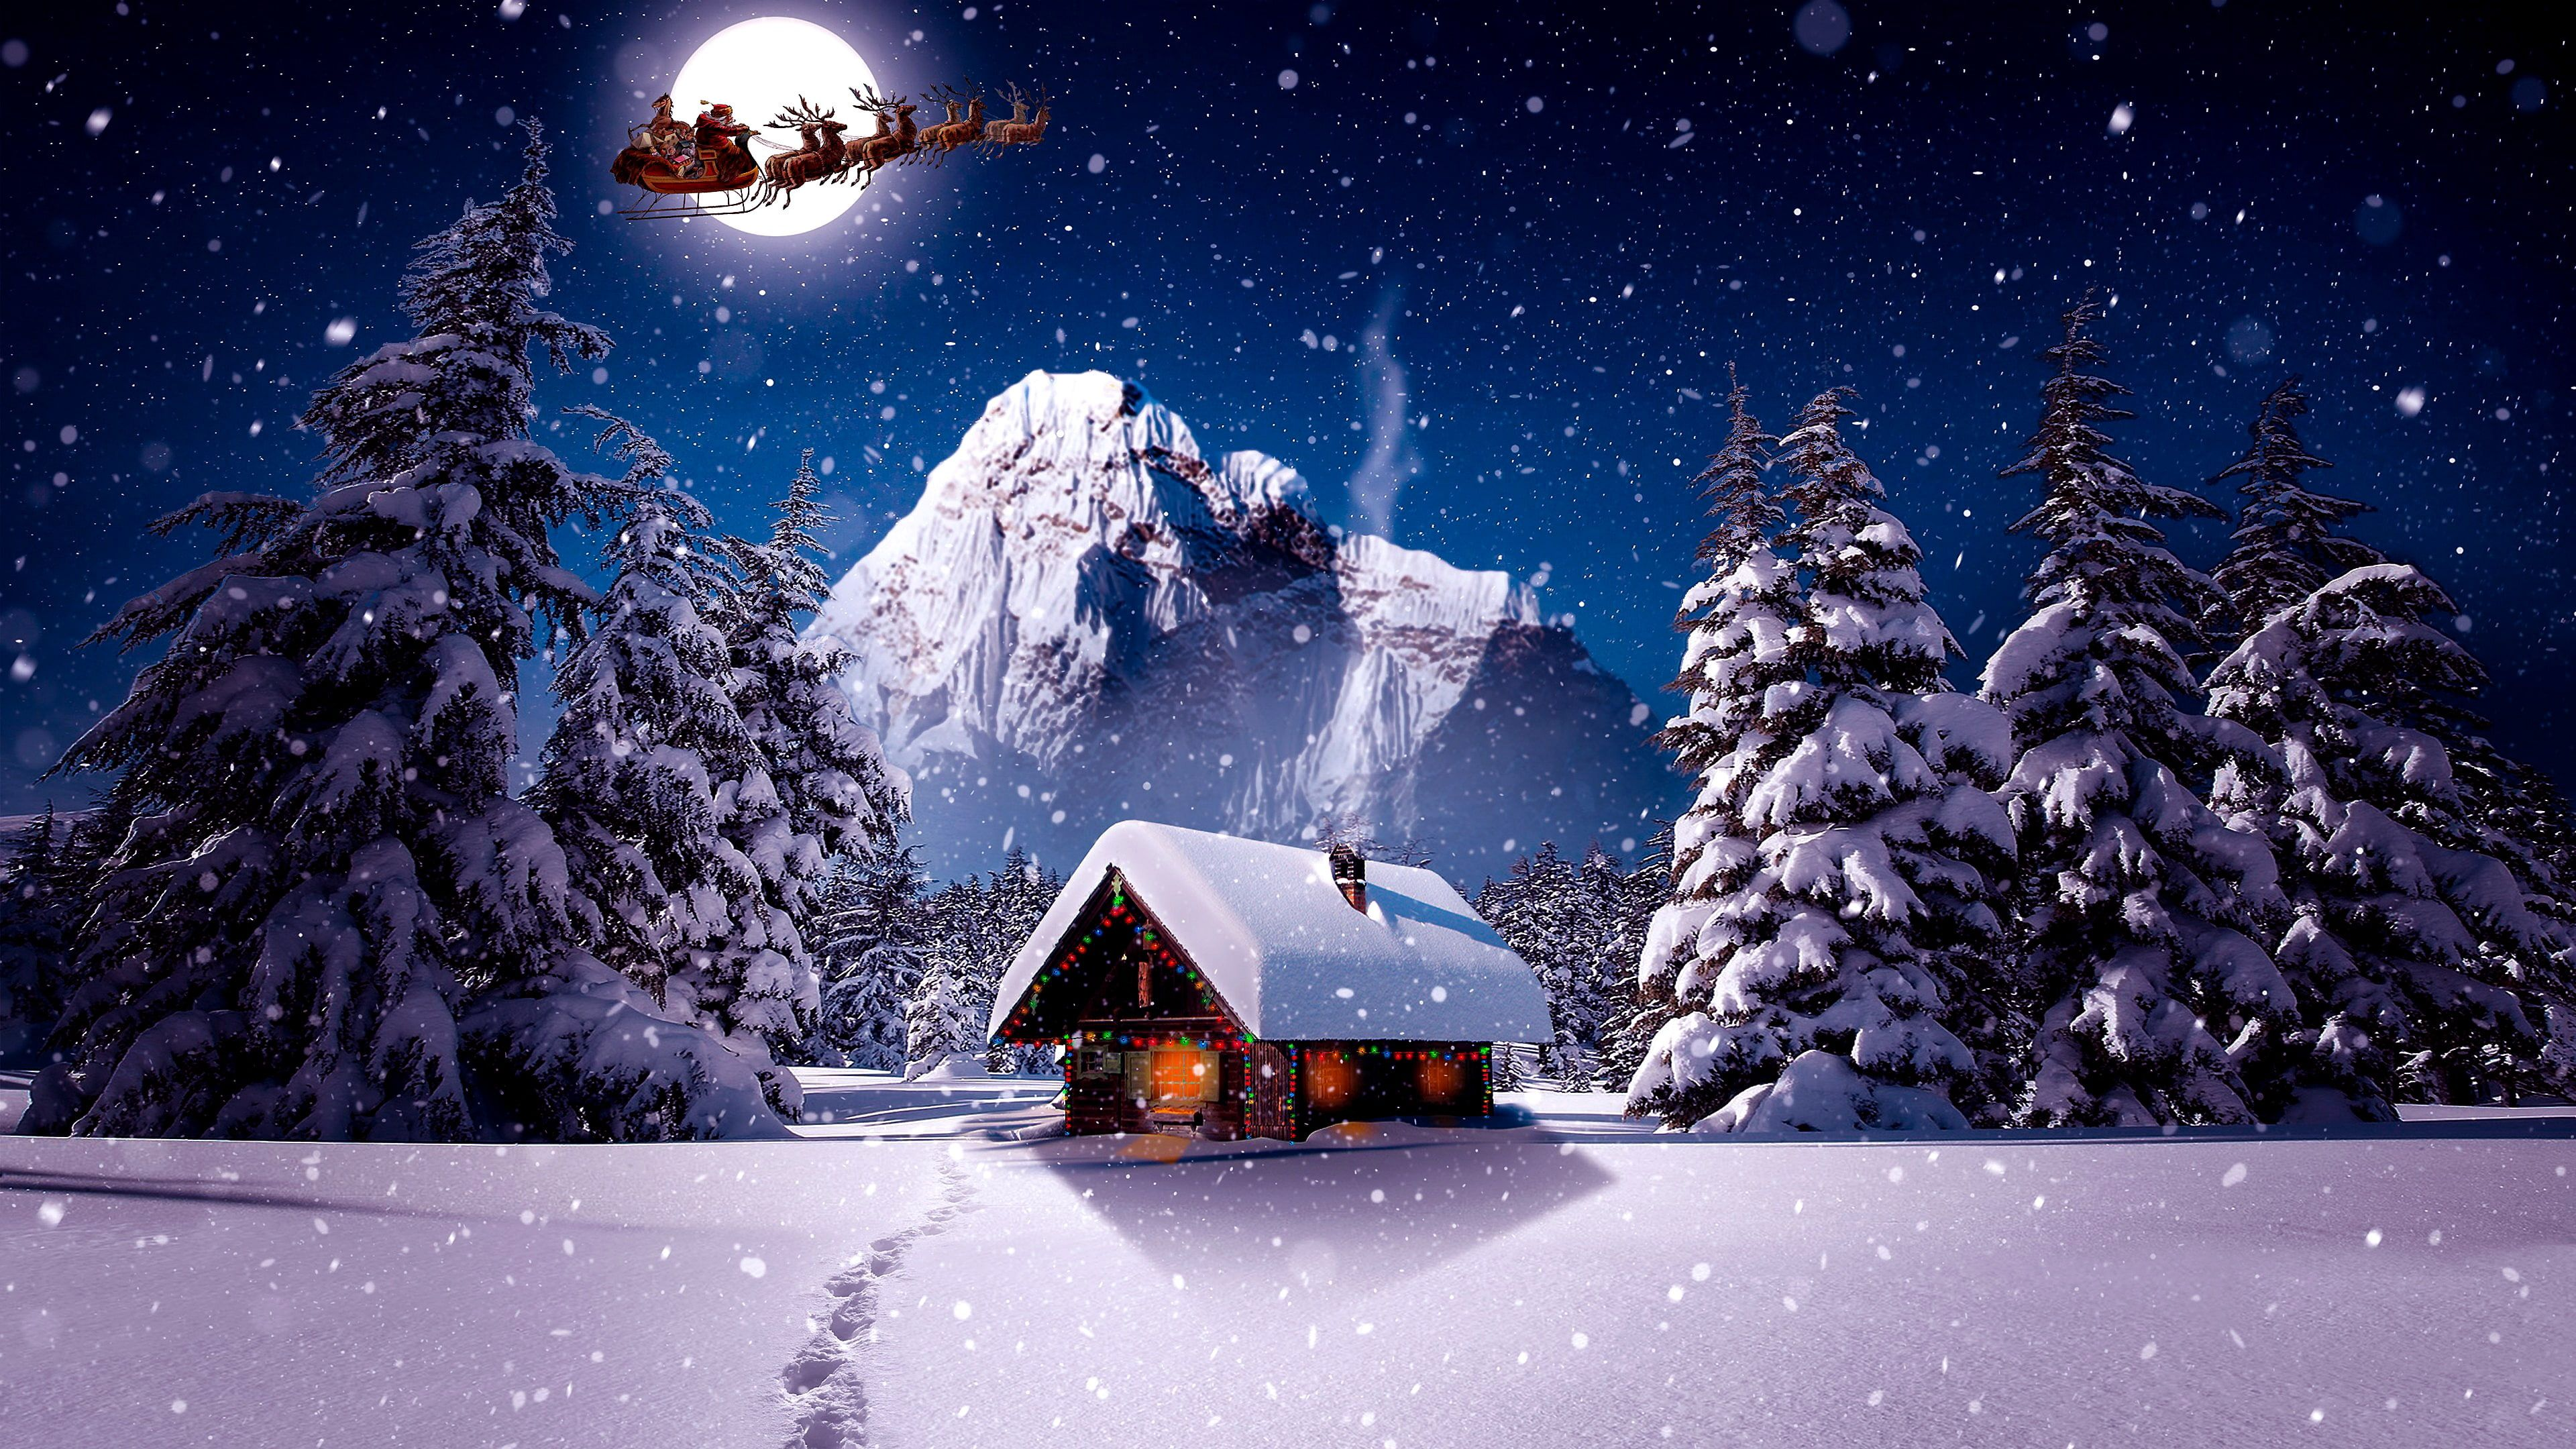 Winter Santa Claus Sleigh Sledge Snow Snowing Moon Log Cabin House Mountain Christmas Night Chistmas 4k Wall Nature Wallpaper Wallpaper Hd Wallpaper